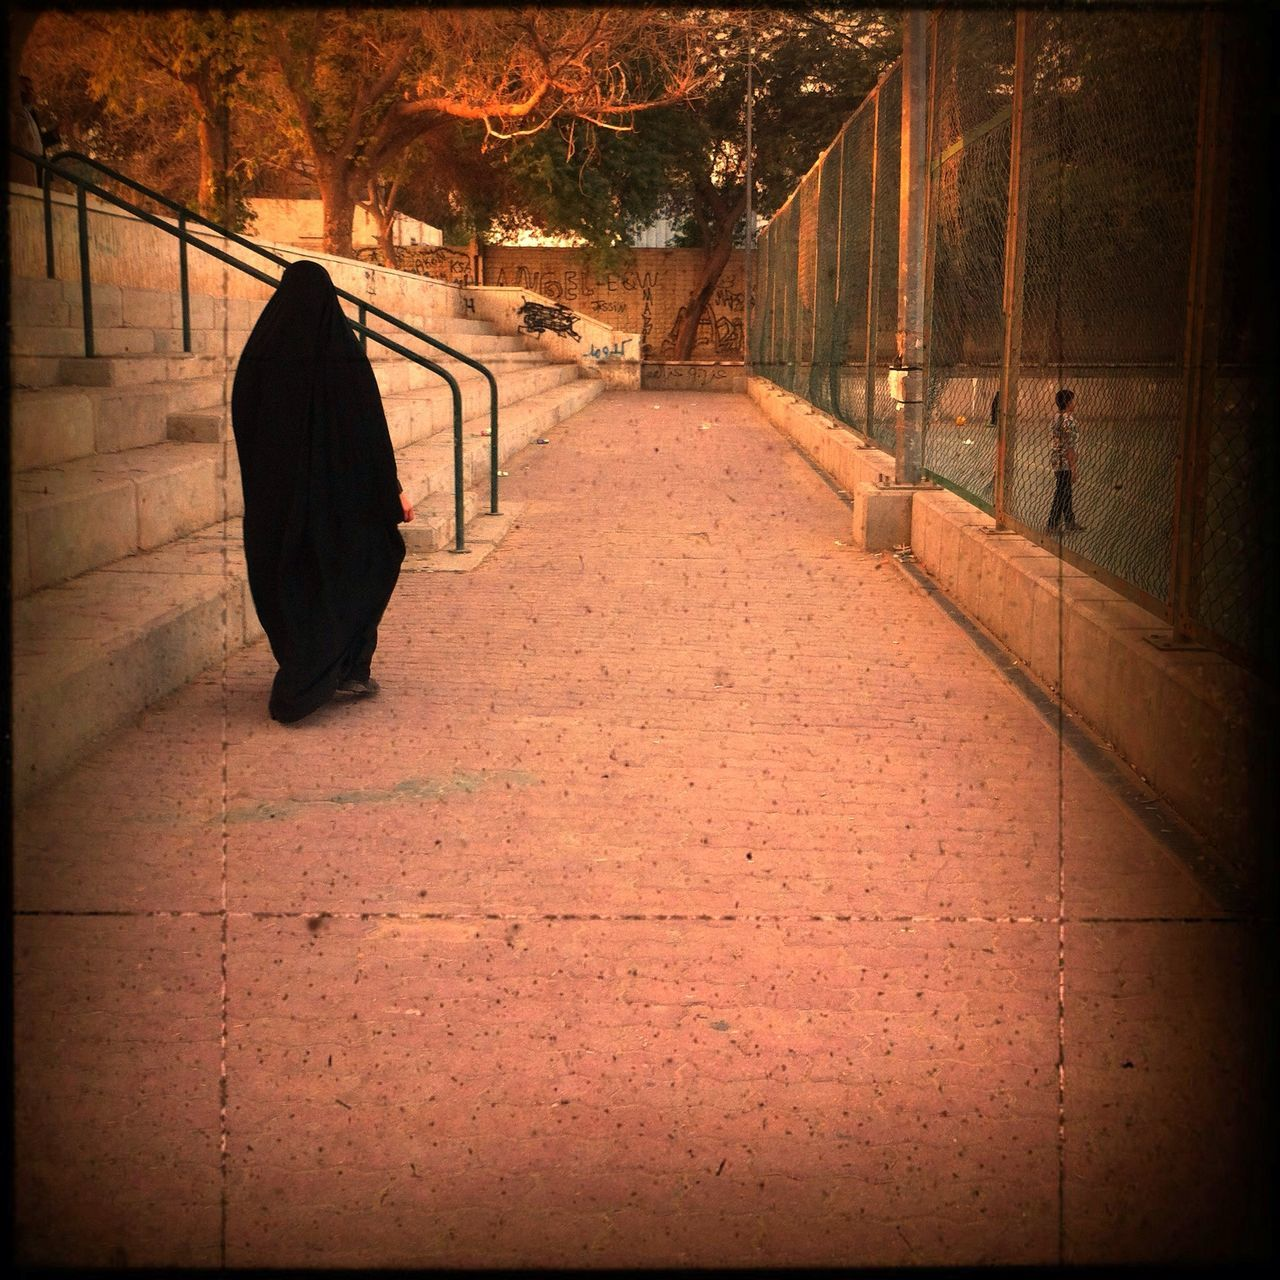 Rear view of a woman in burka walking on pathway